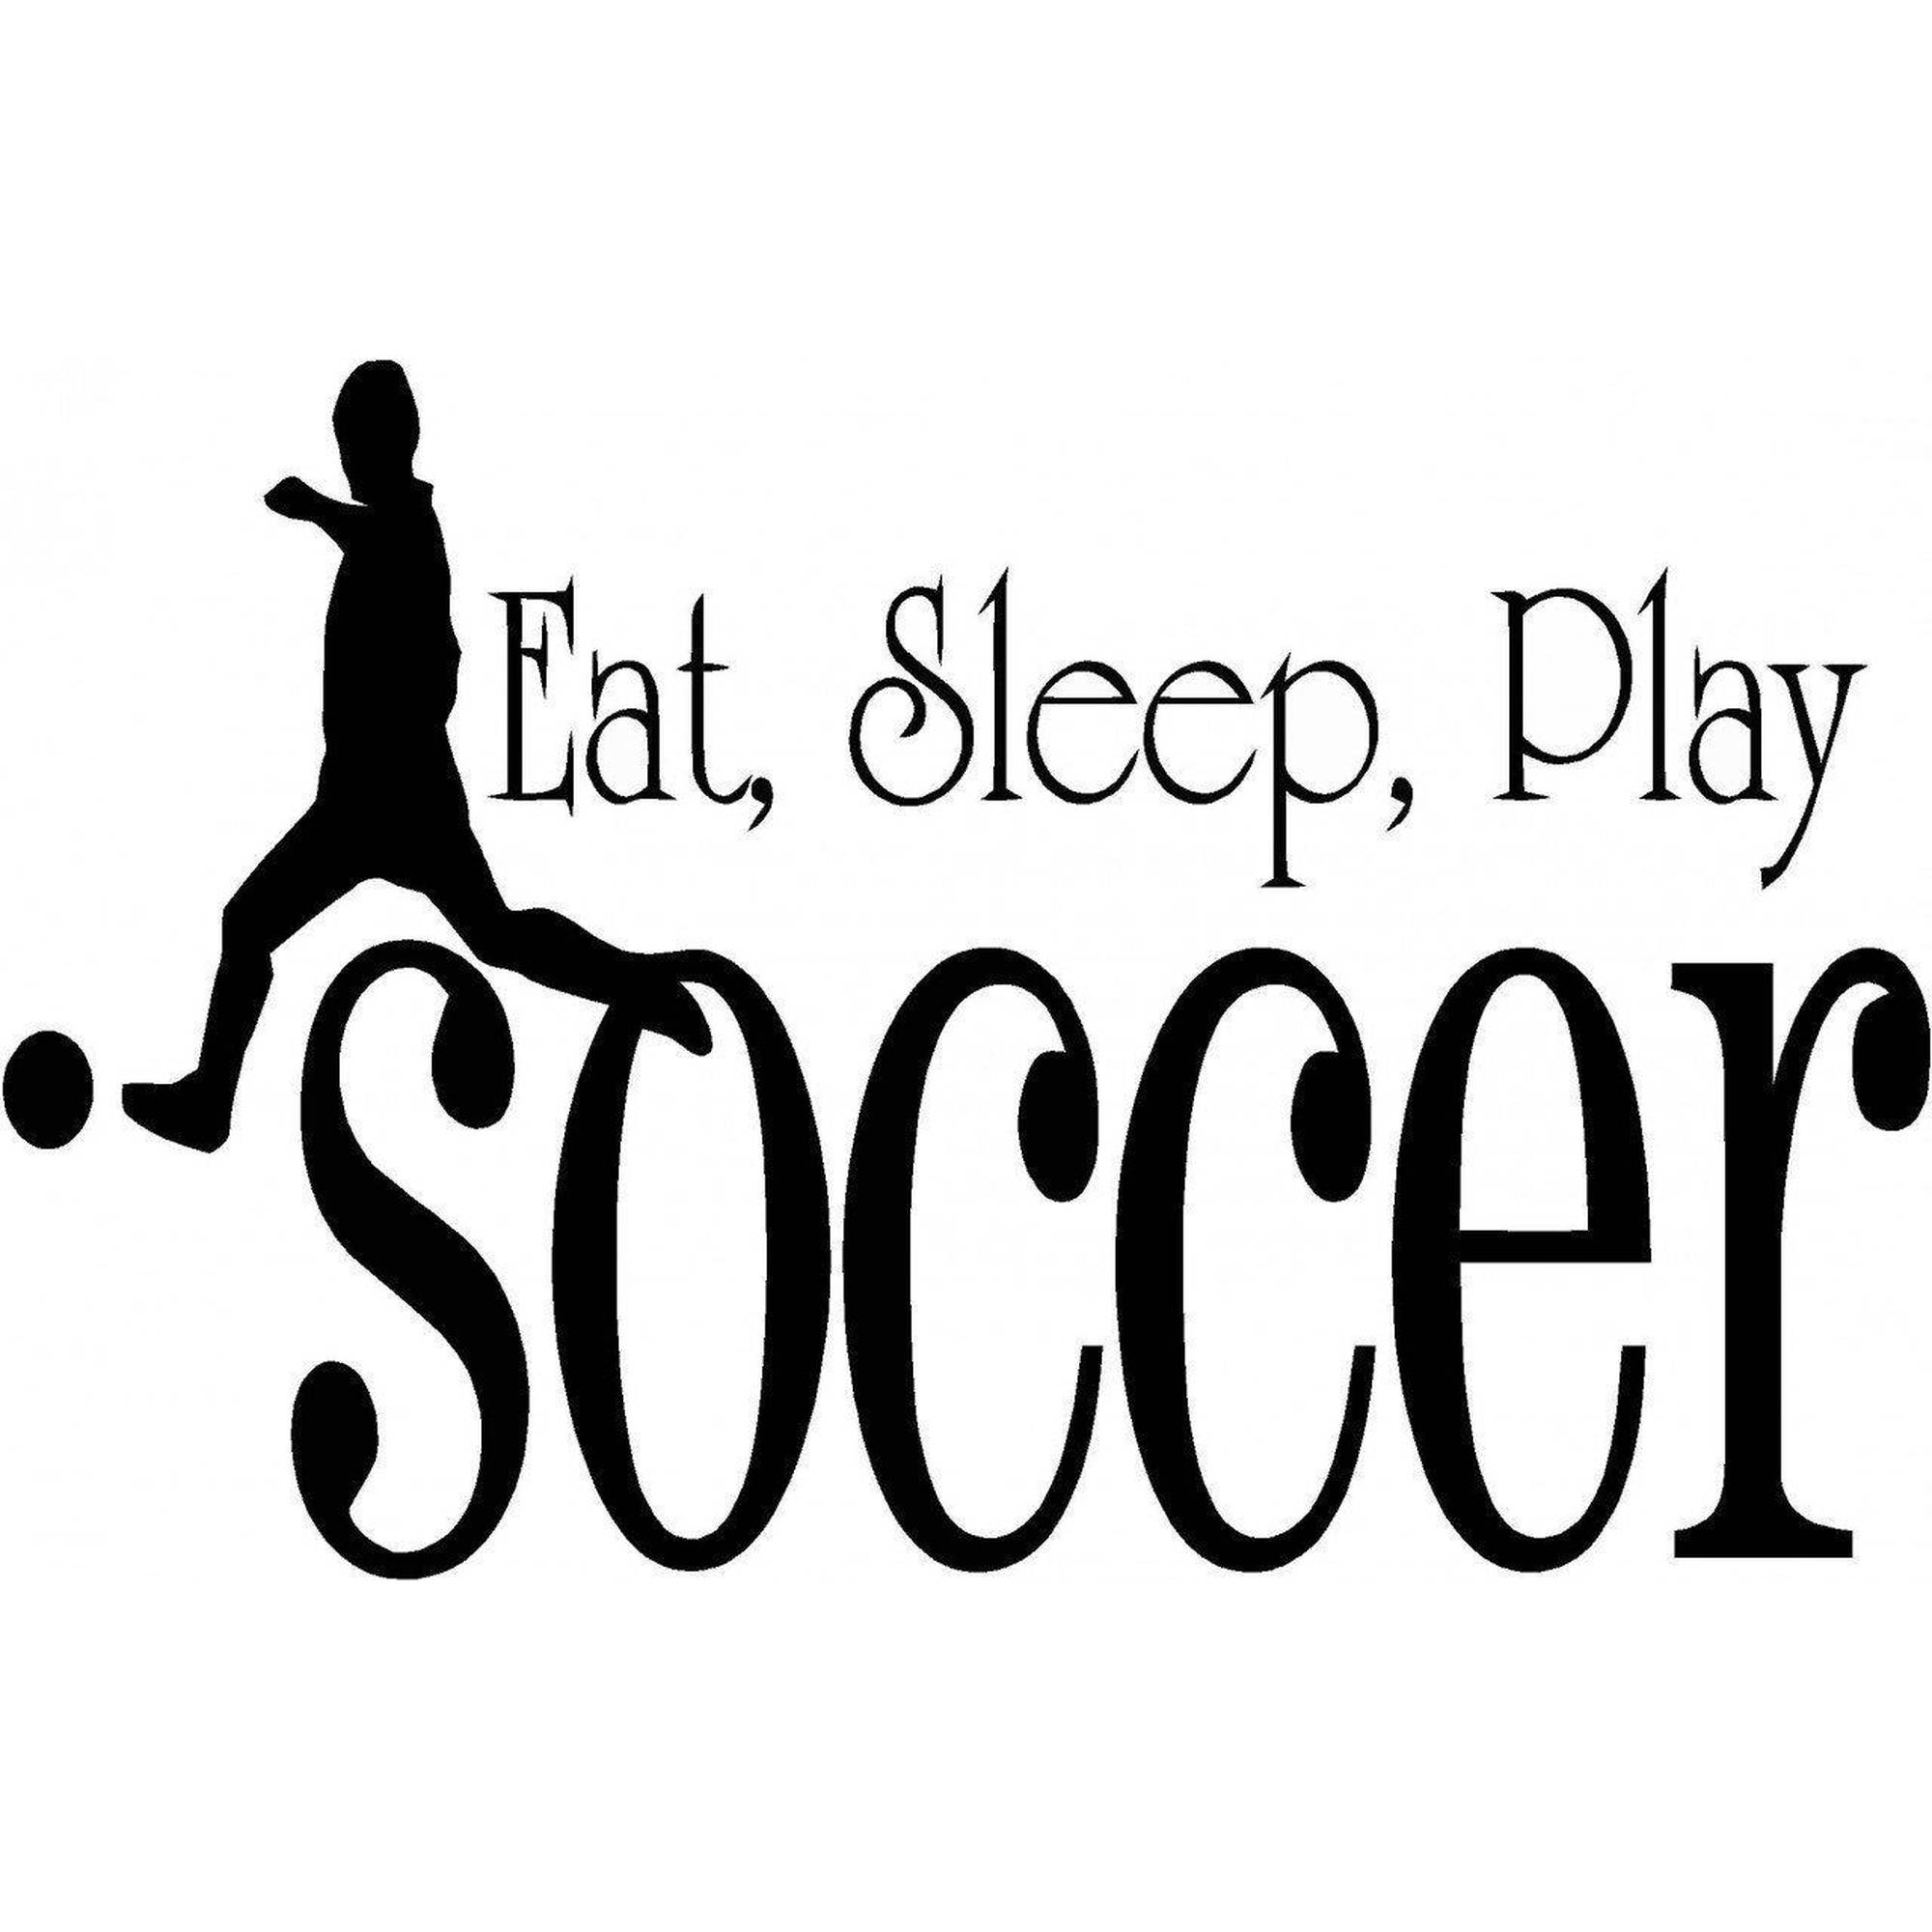 "Eat, Sleep, Play Soccer Quote Vinyl Wall Decal, 15"" x 20"", Black"